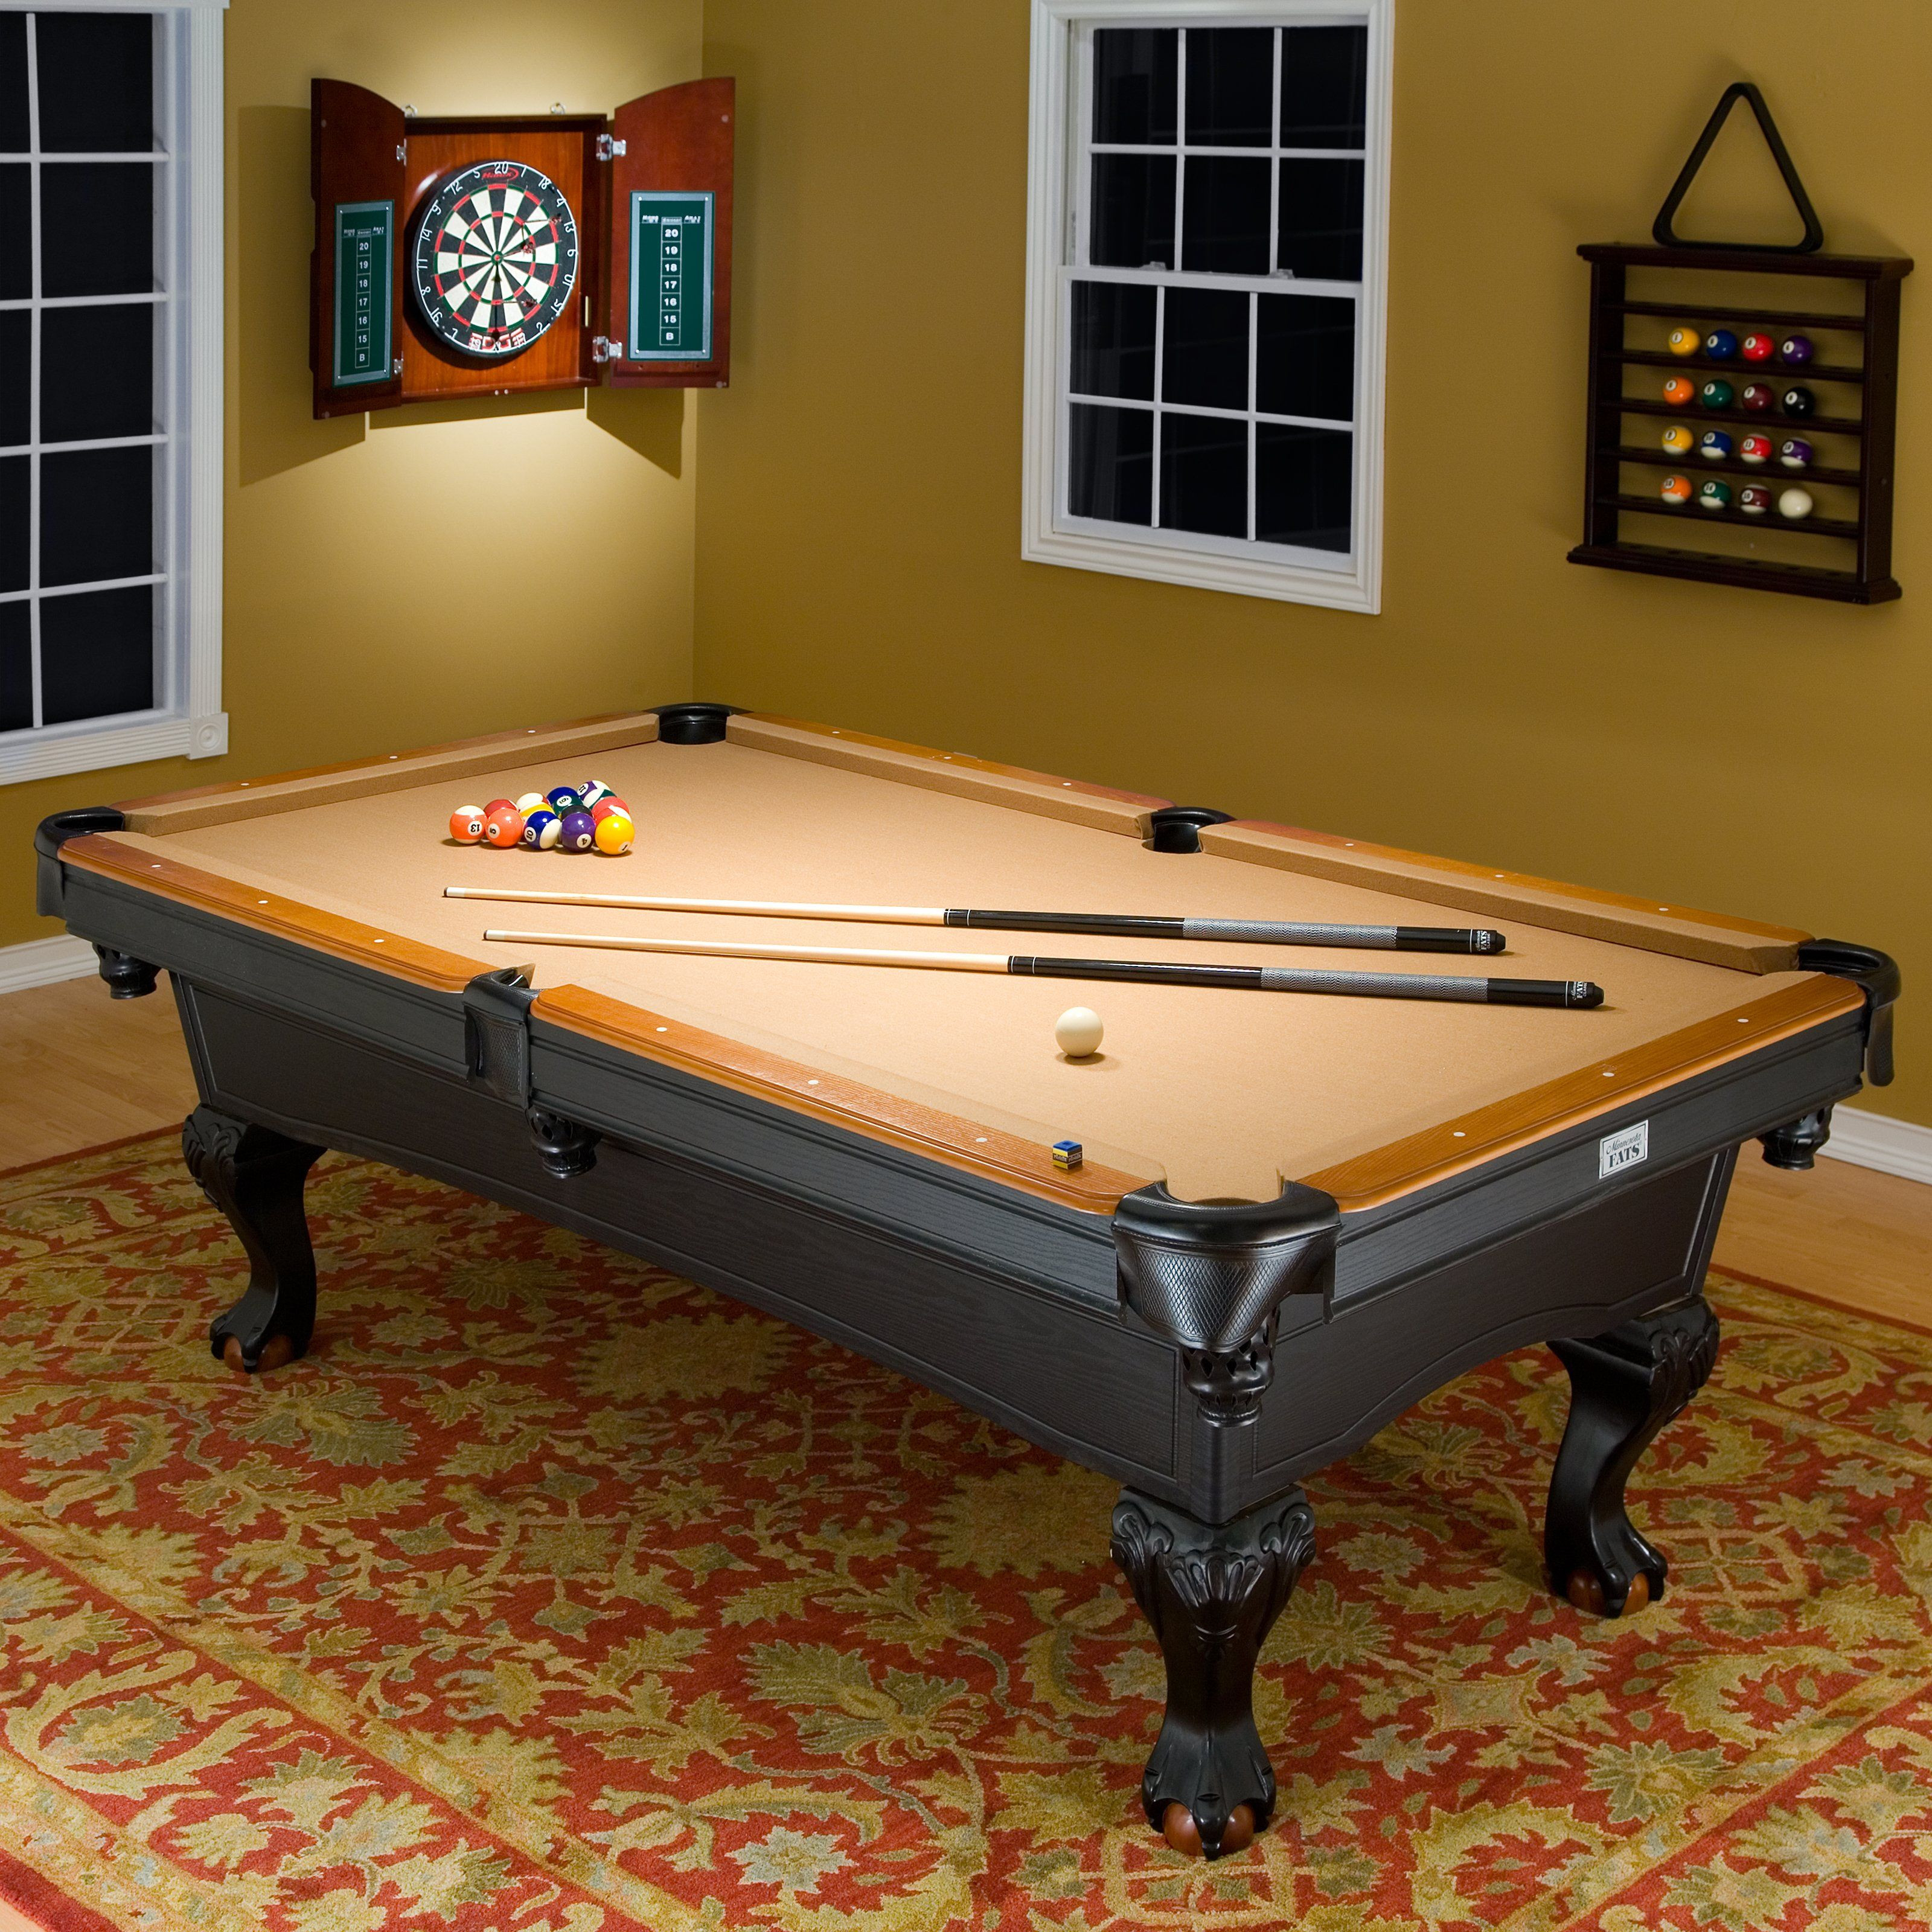 Best ideas about Game Room Table . Save or Pin Minnesota Fats 8 ft Covington Billiard Table Now.